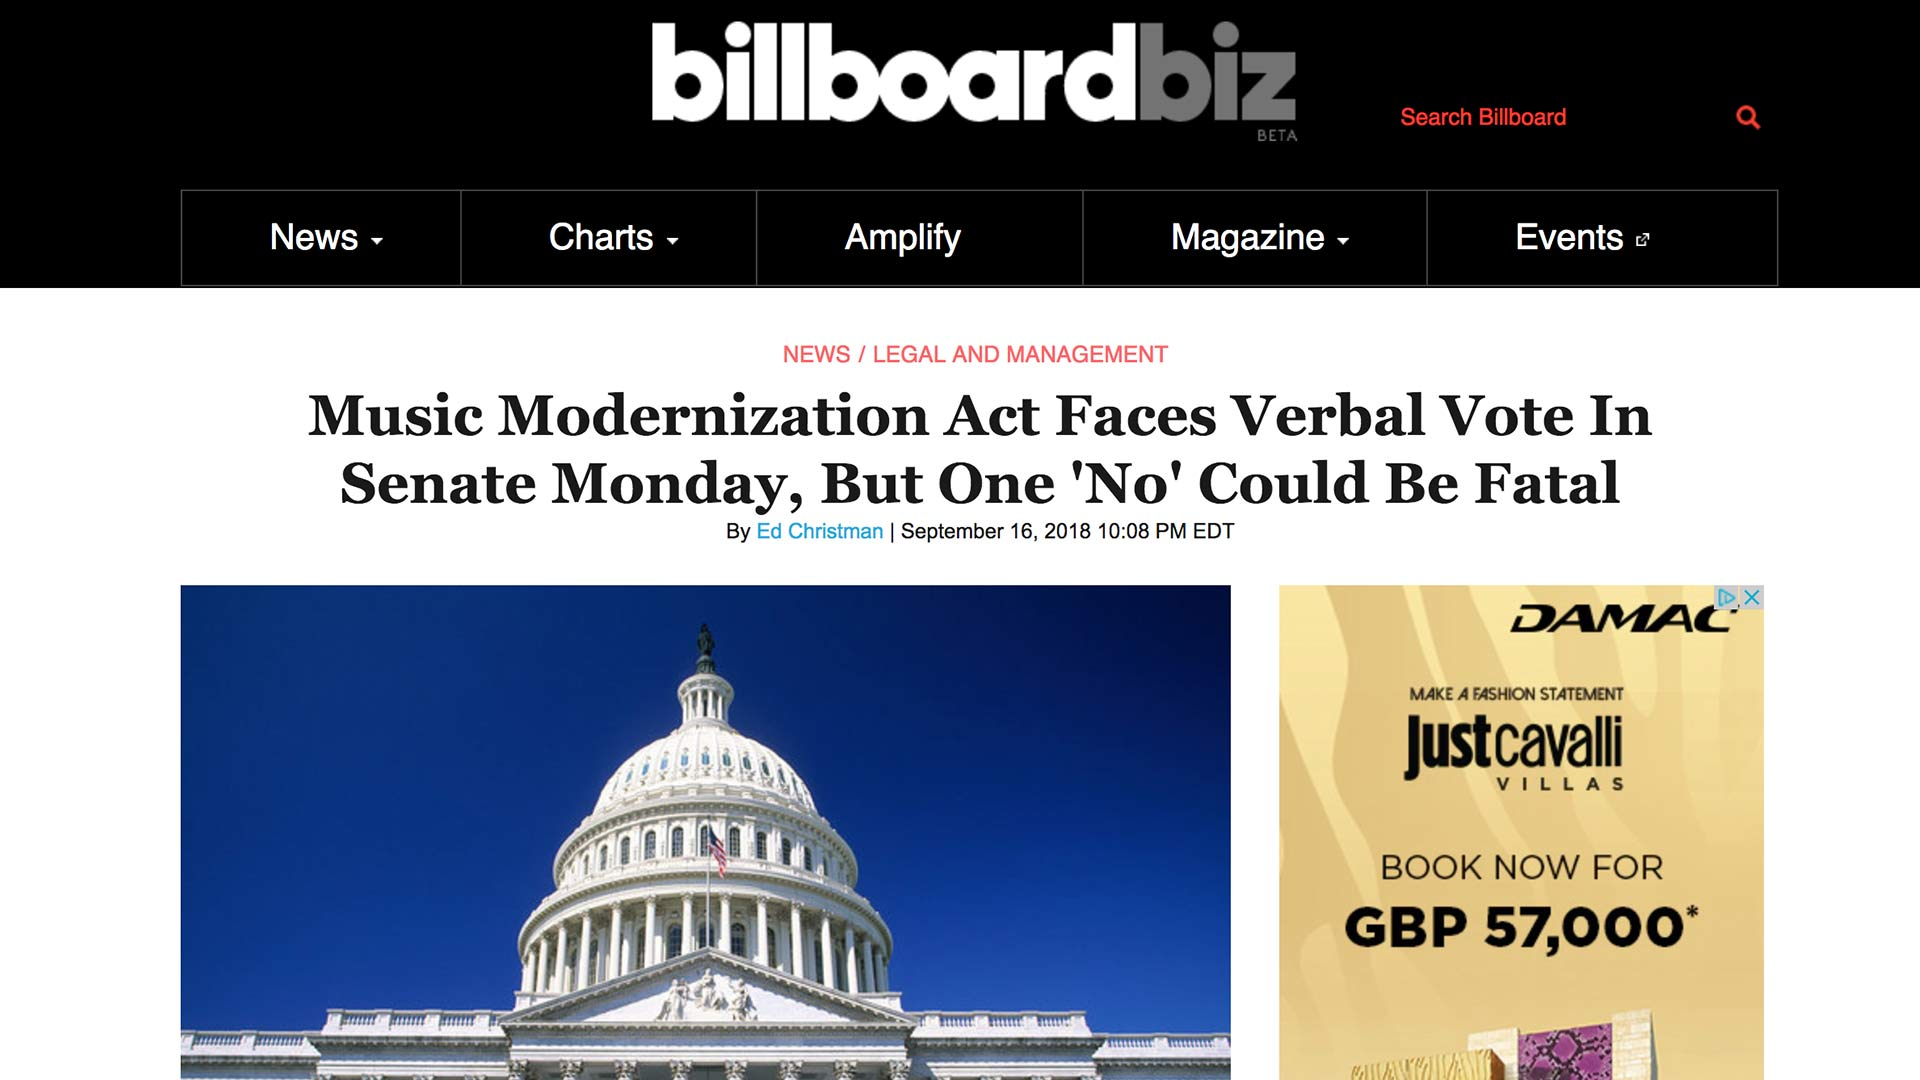 Fairness Rocks News Music Modernization Act Faces Verbal Vote In Senate Monday, But One 'No' Could Be Fatal